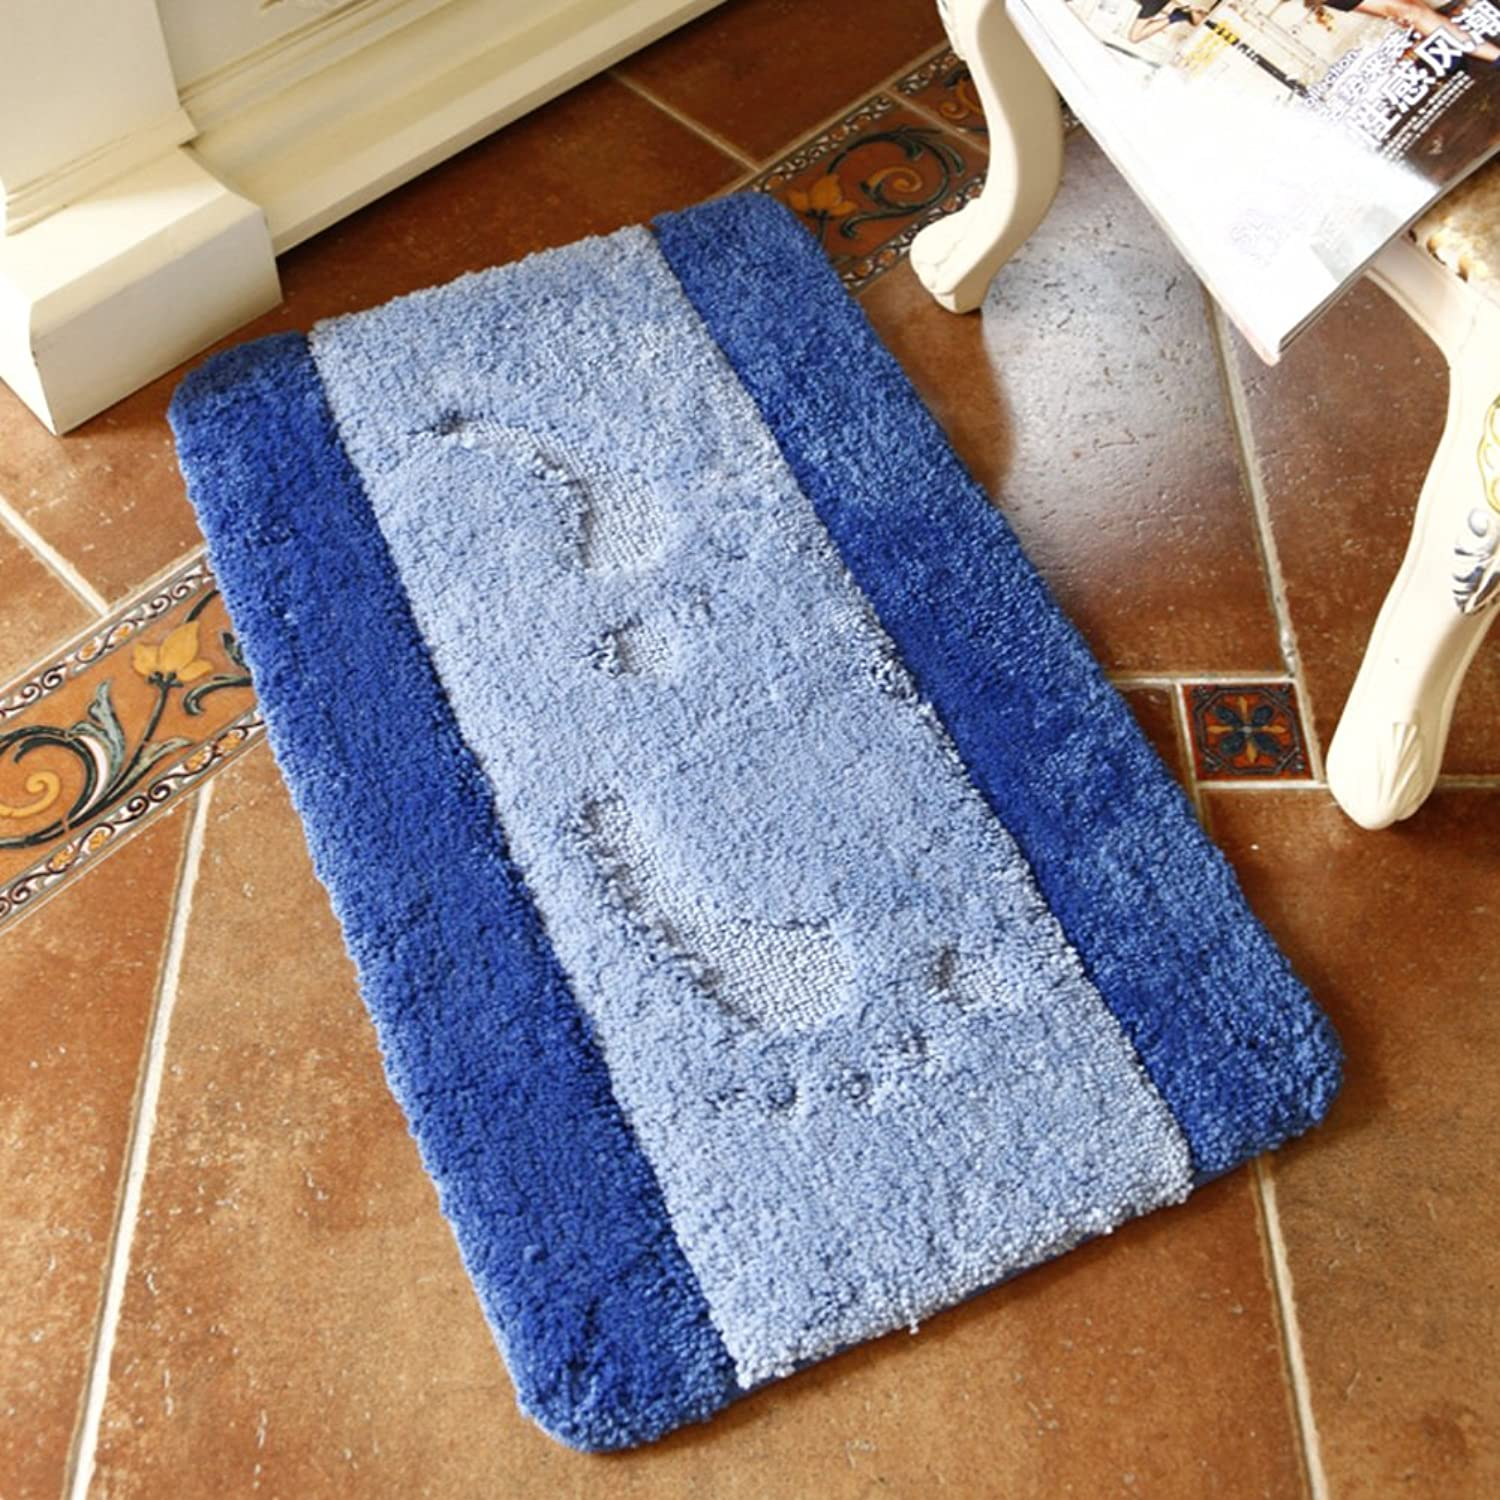 Living Room Indoor mats doormats European Household mats Bedroom Blanket for Bedroom Bathroom Water-Absorbing Non-sliping mats-D 80x120cm(31x47inch)